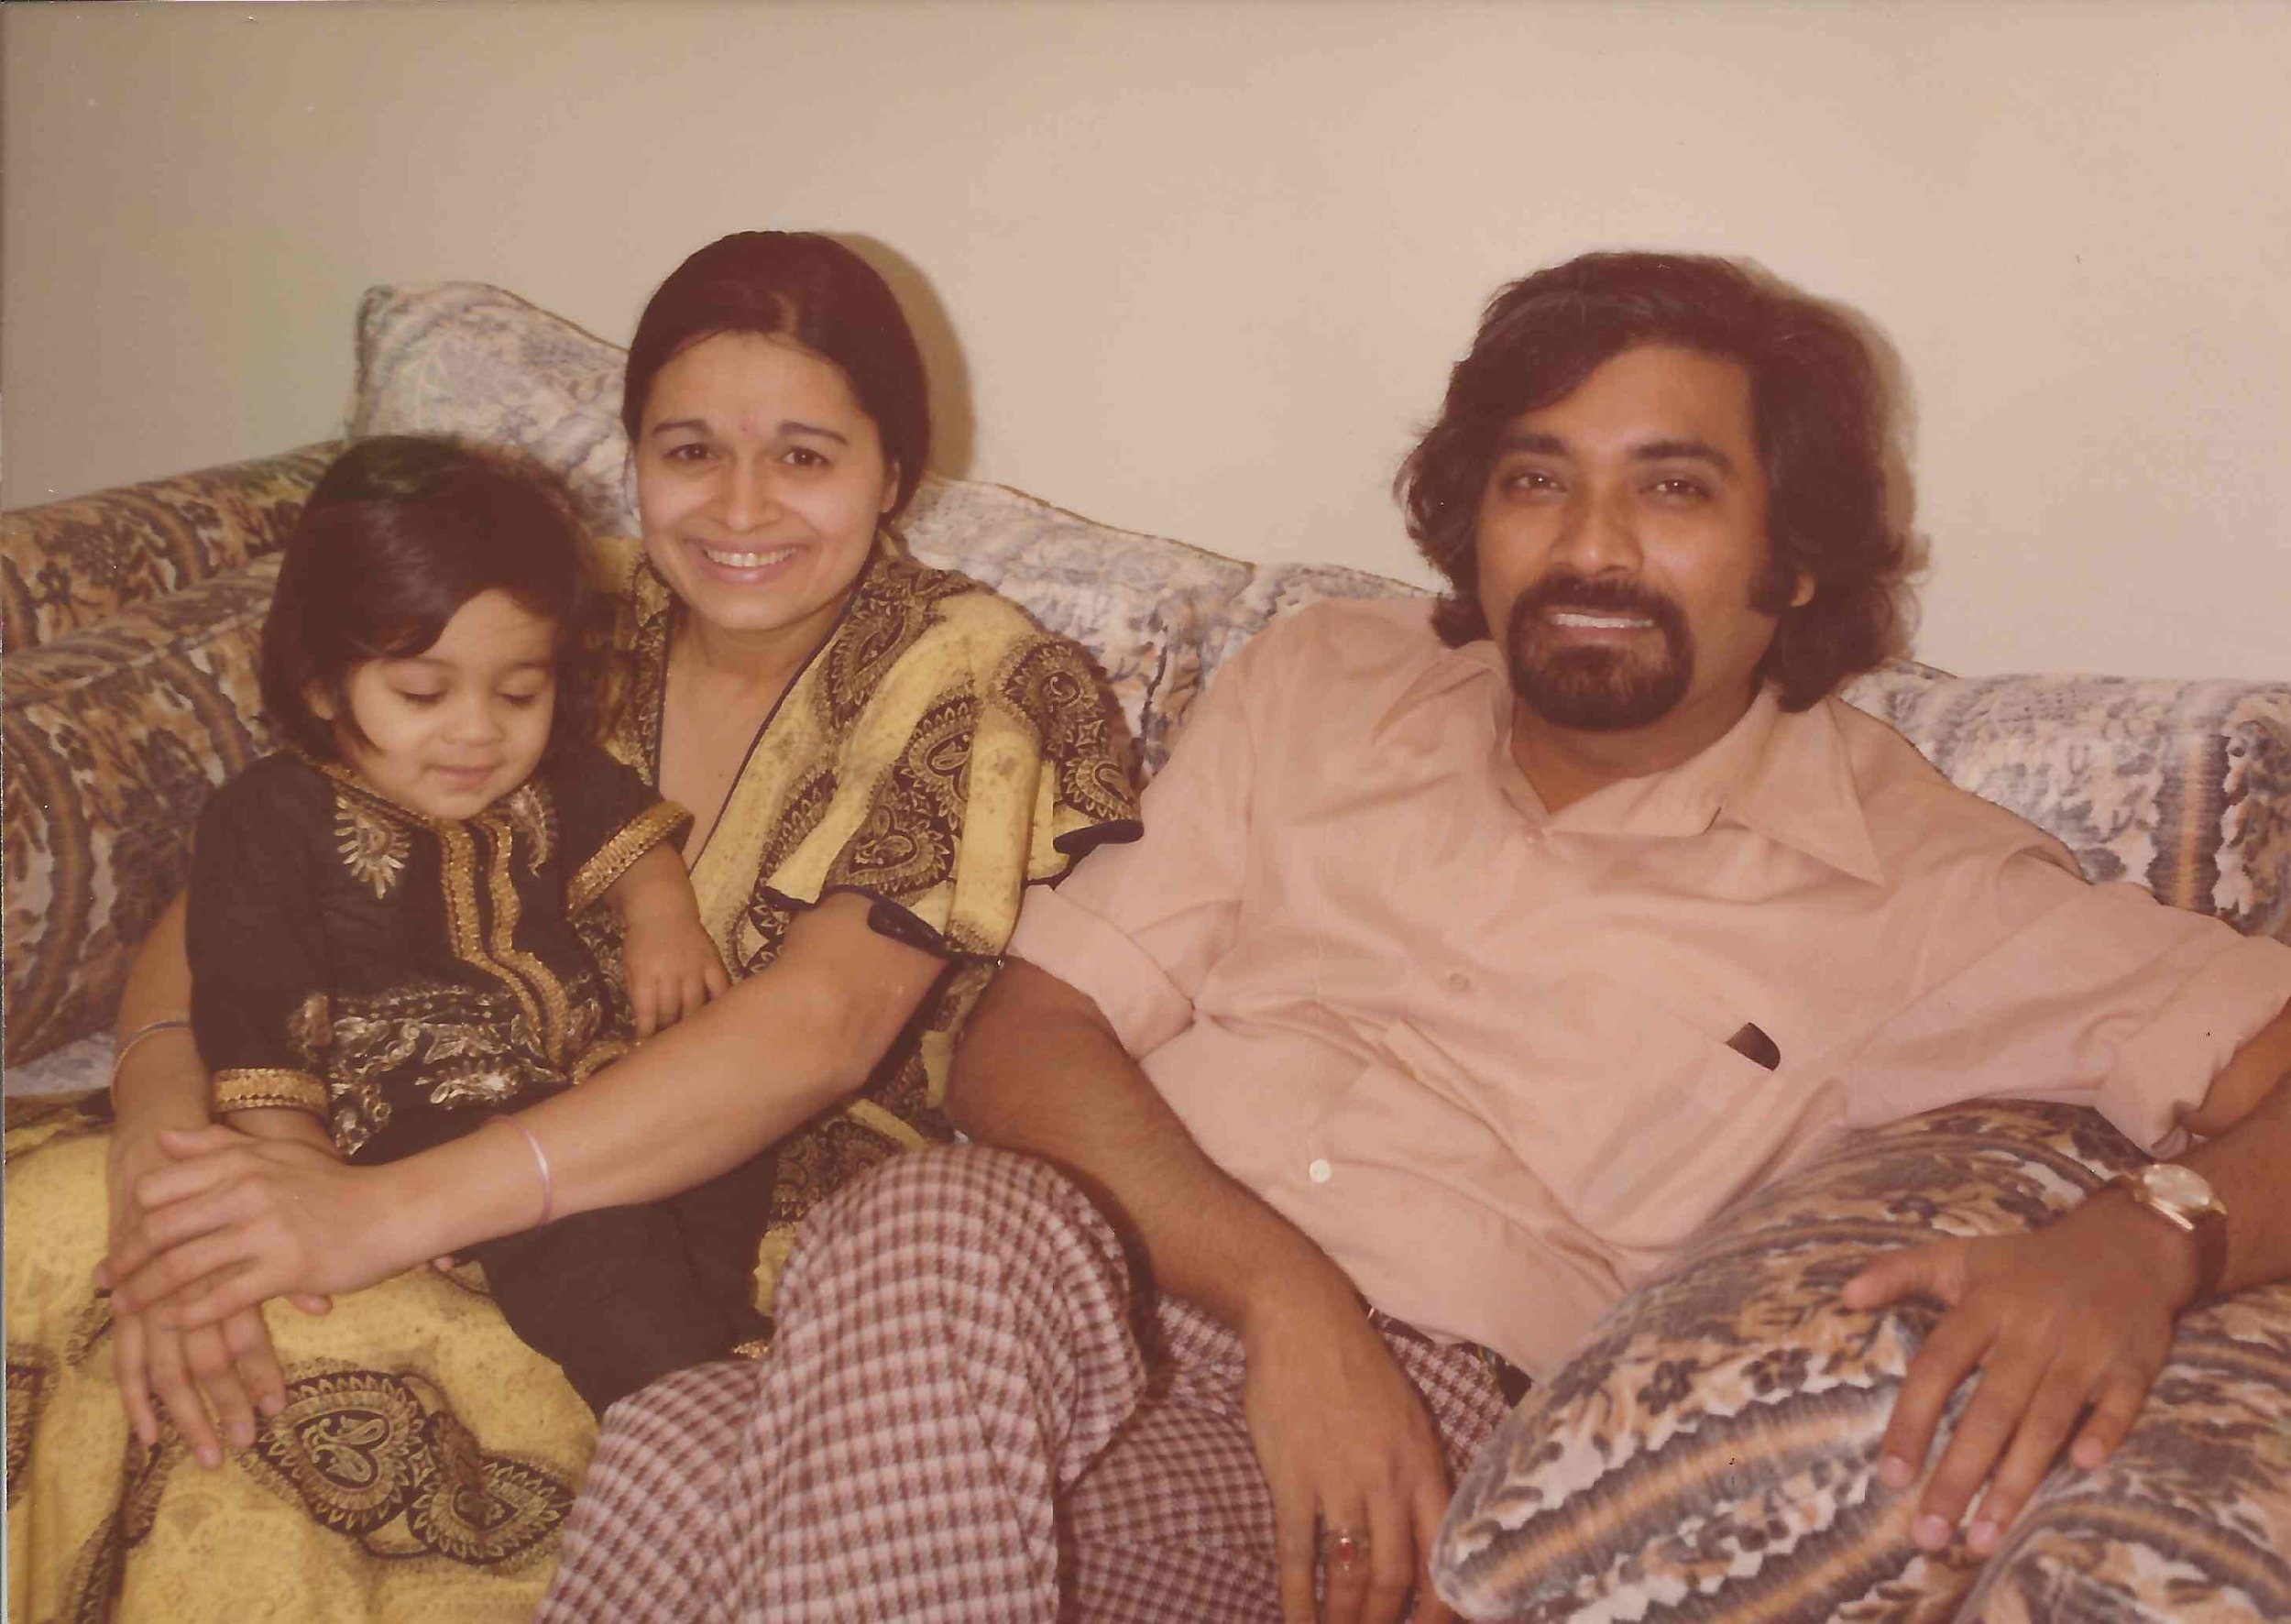 Sam, Anu and Salil relaxing at home